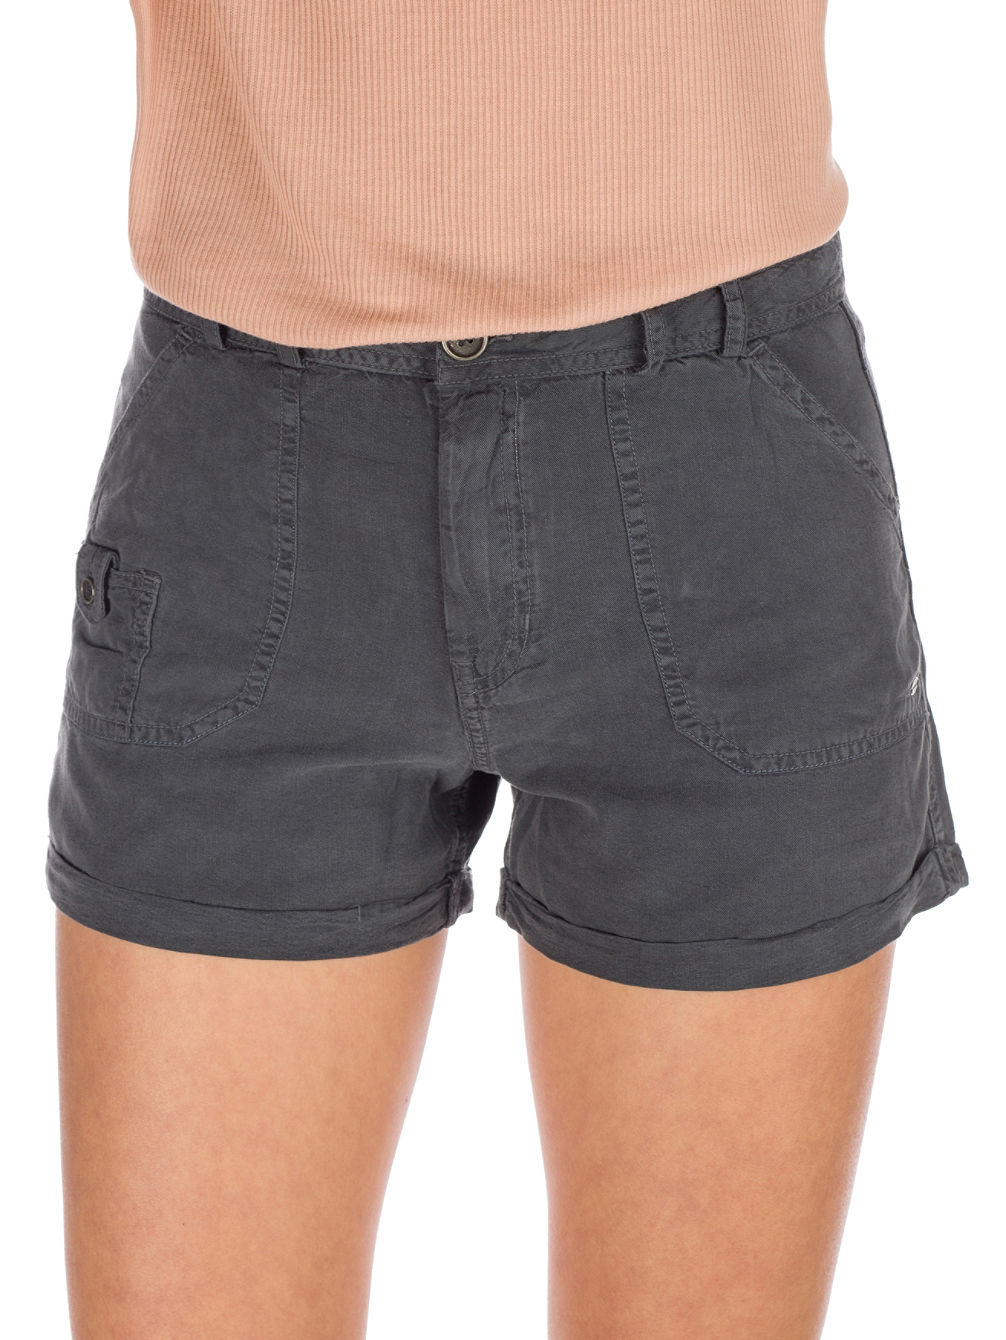 5 Pocket Drapey Shorts